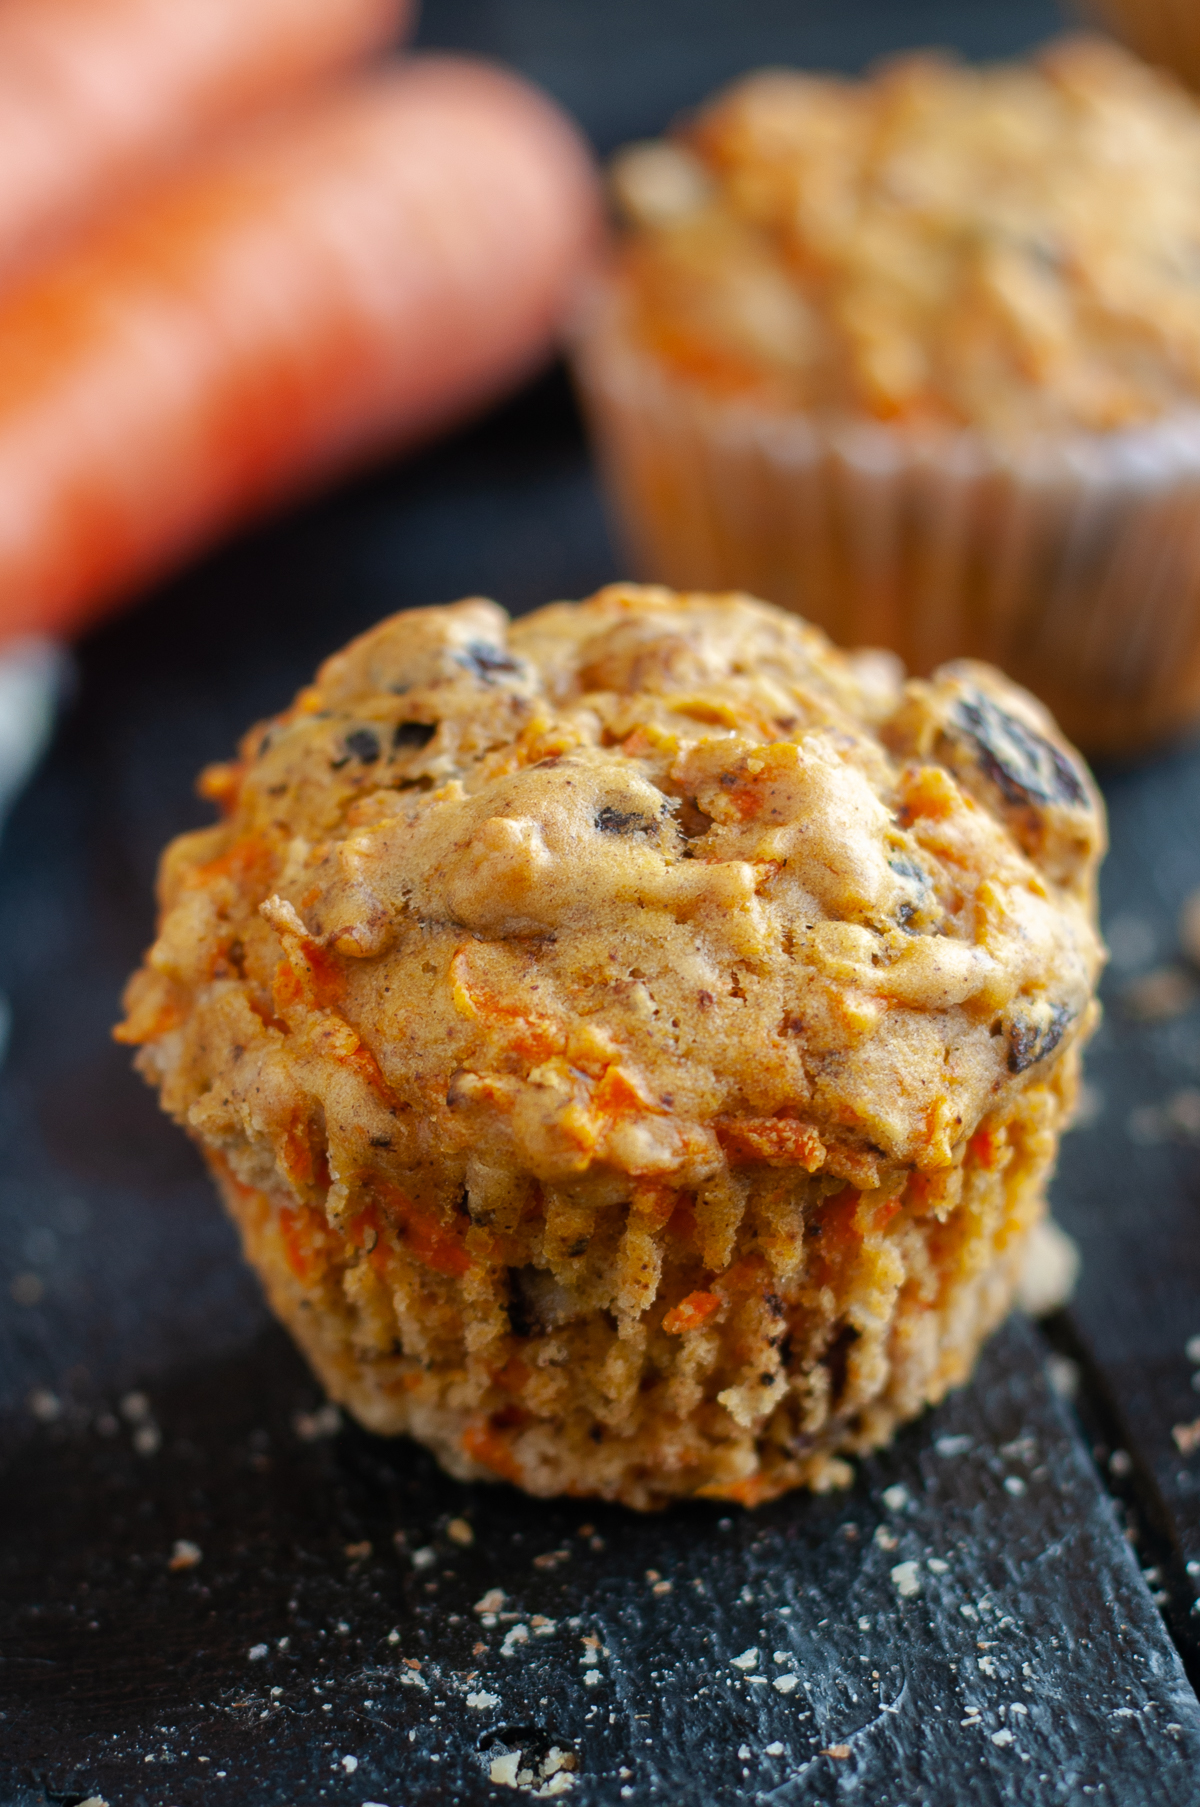 muffins are loaded with shredded carrots, raisins and walnuts add nutty crunch. Perfect served alongside your morning coffee. #vegan #muffin #breakfast #recipe #carrot #spring #easter